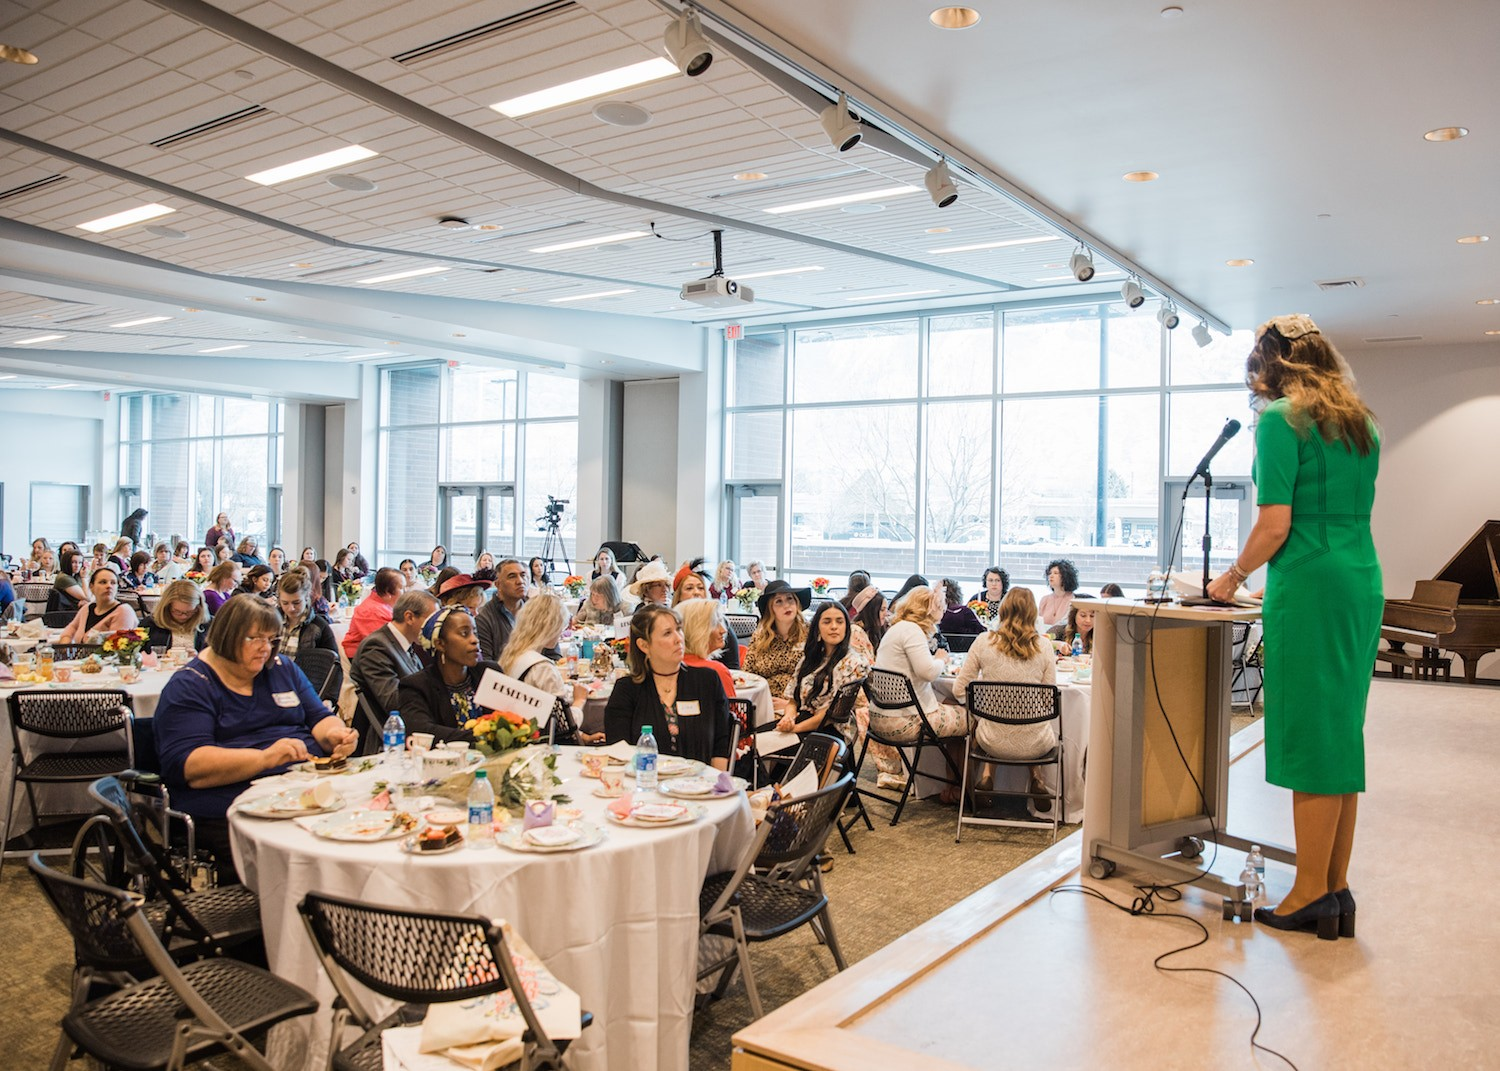 6th annual Provo Women's Day goes 'Behind the Mask'